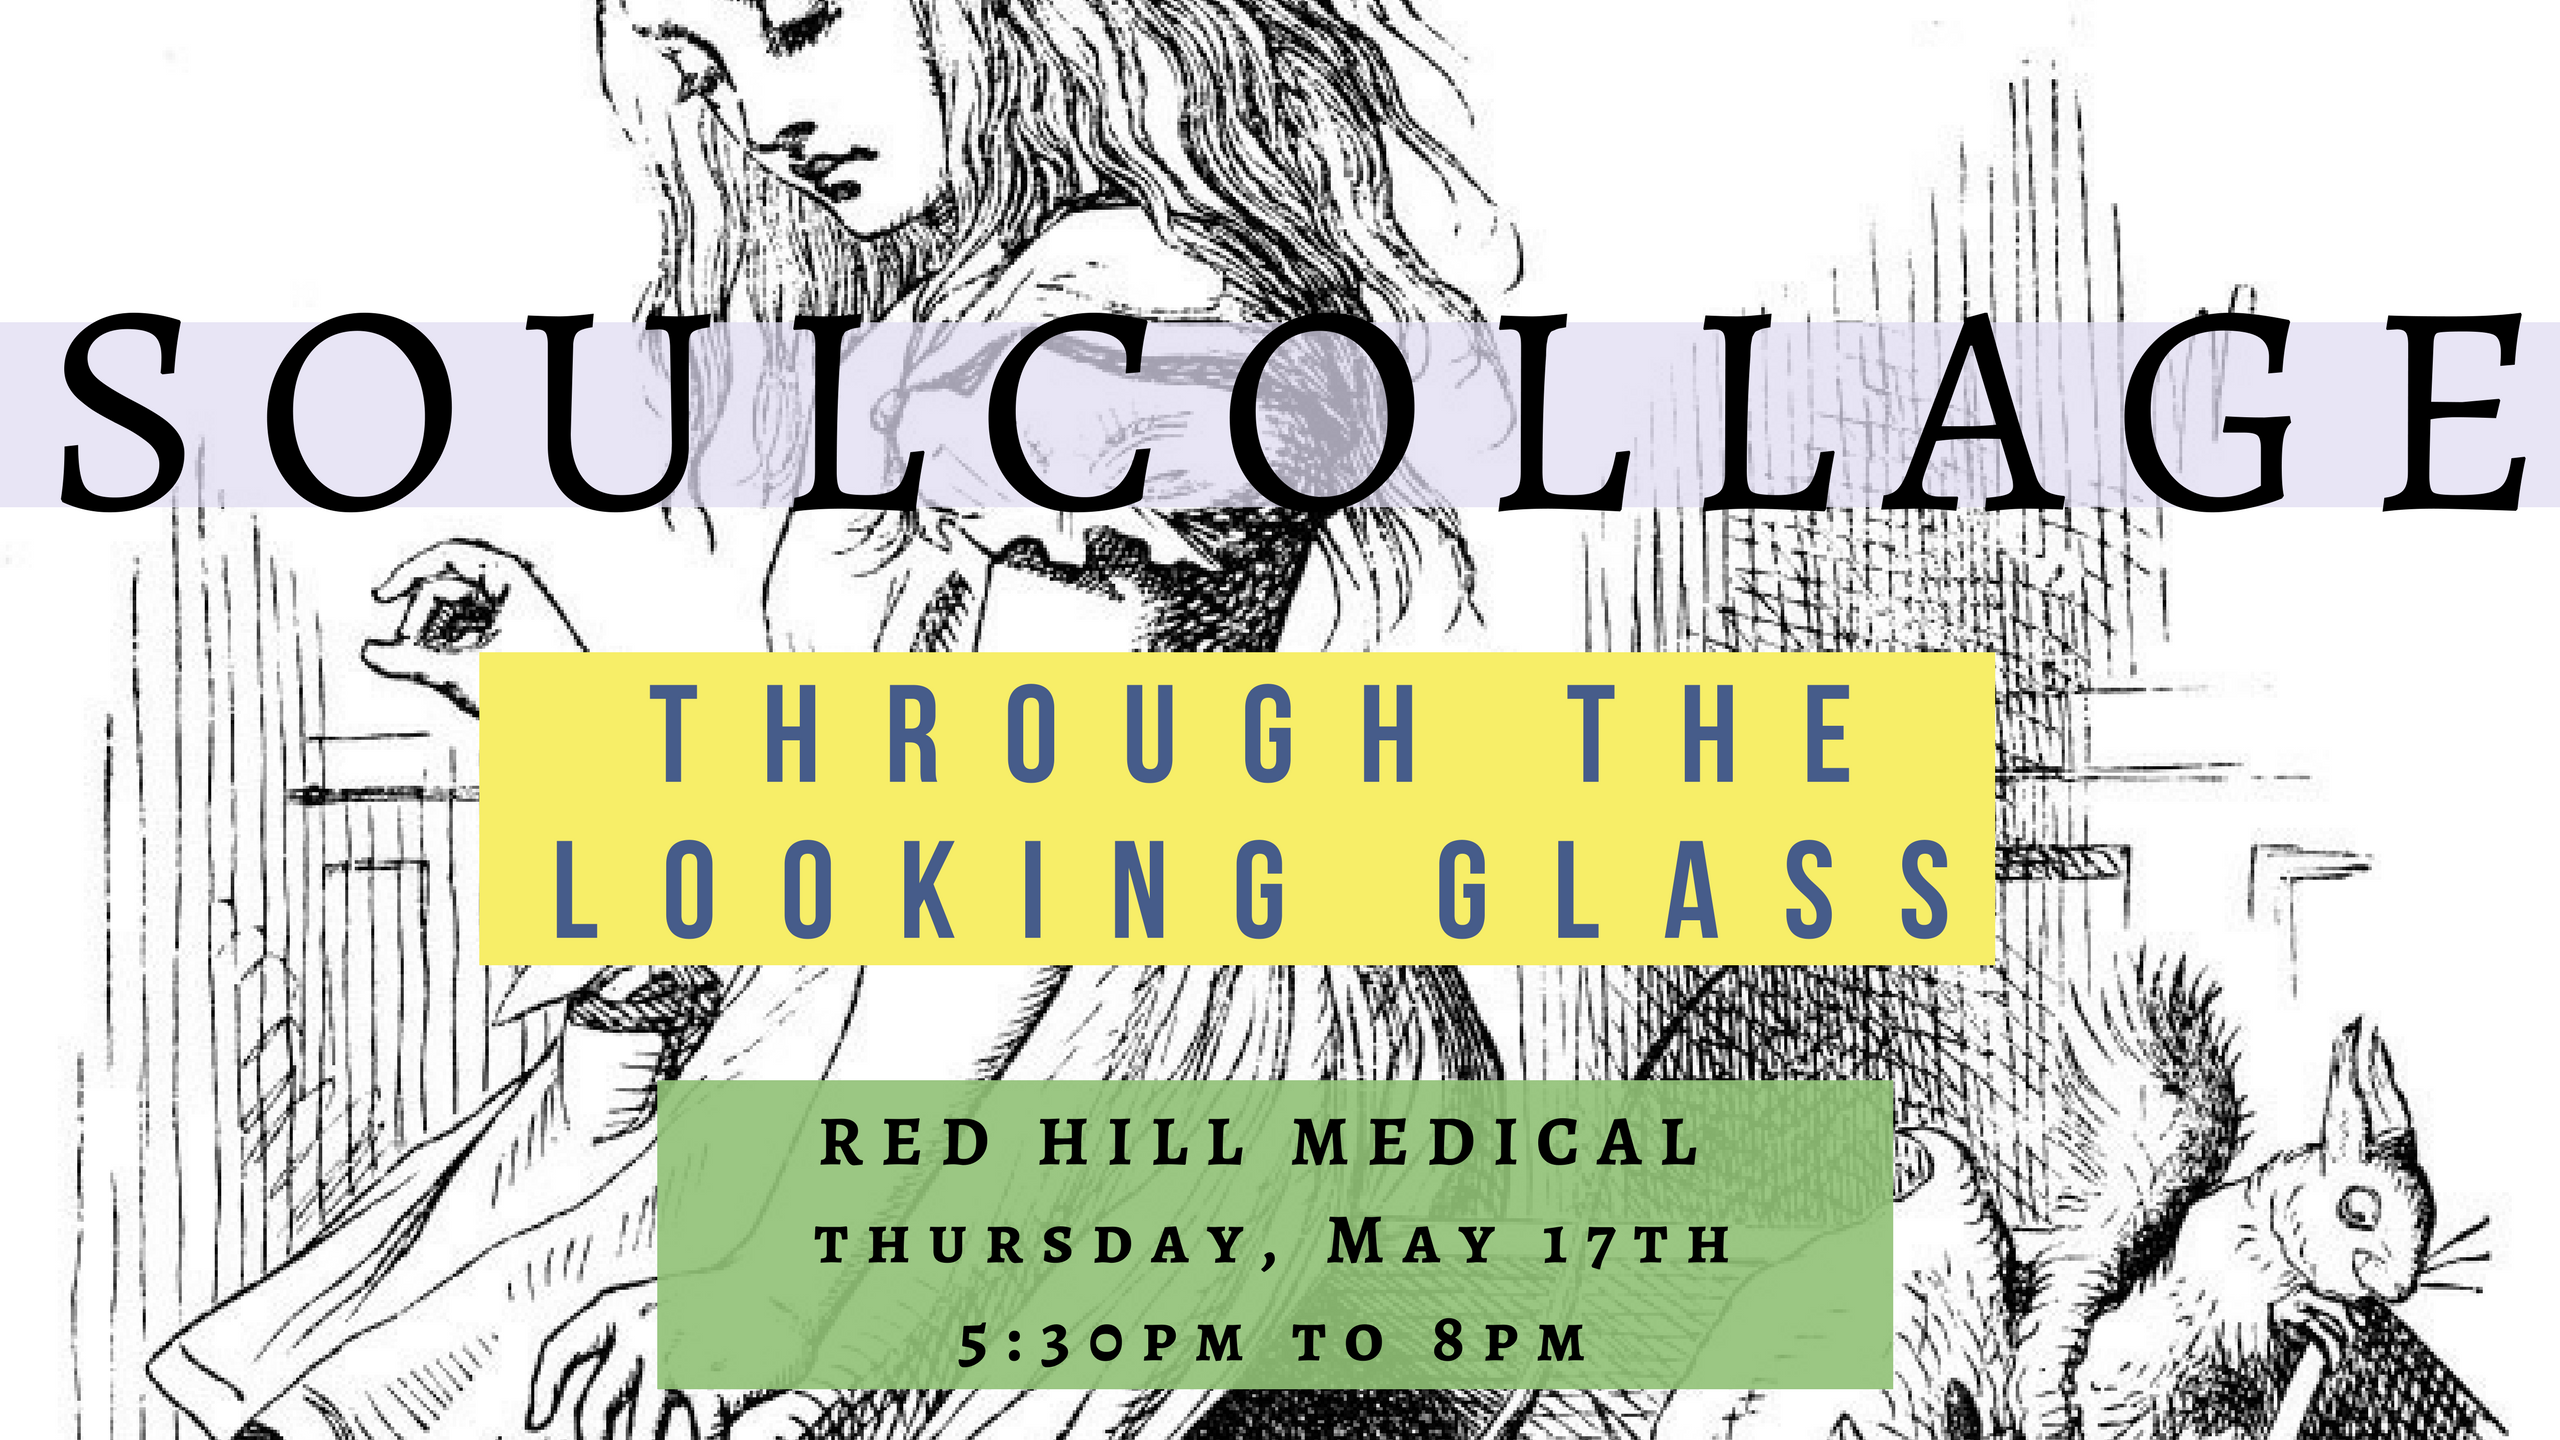 SoulCollage | Through the Looking Glass